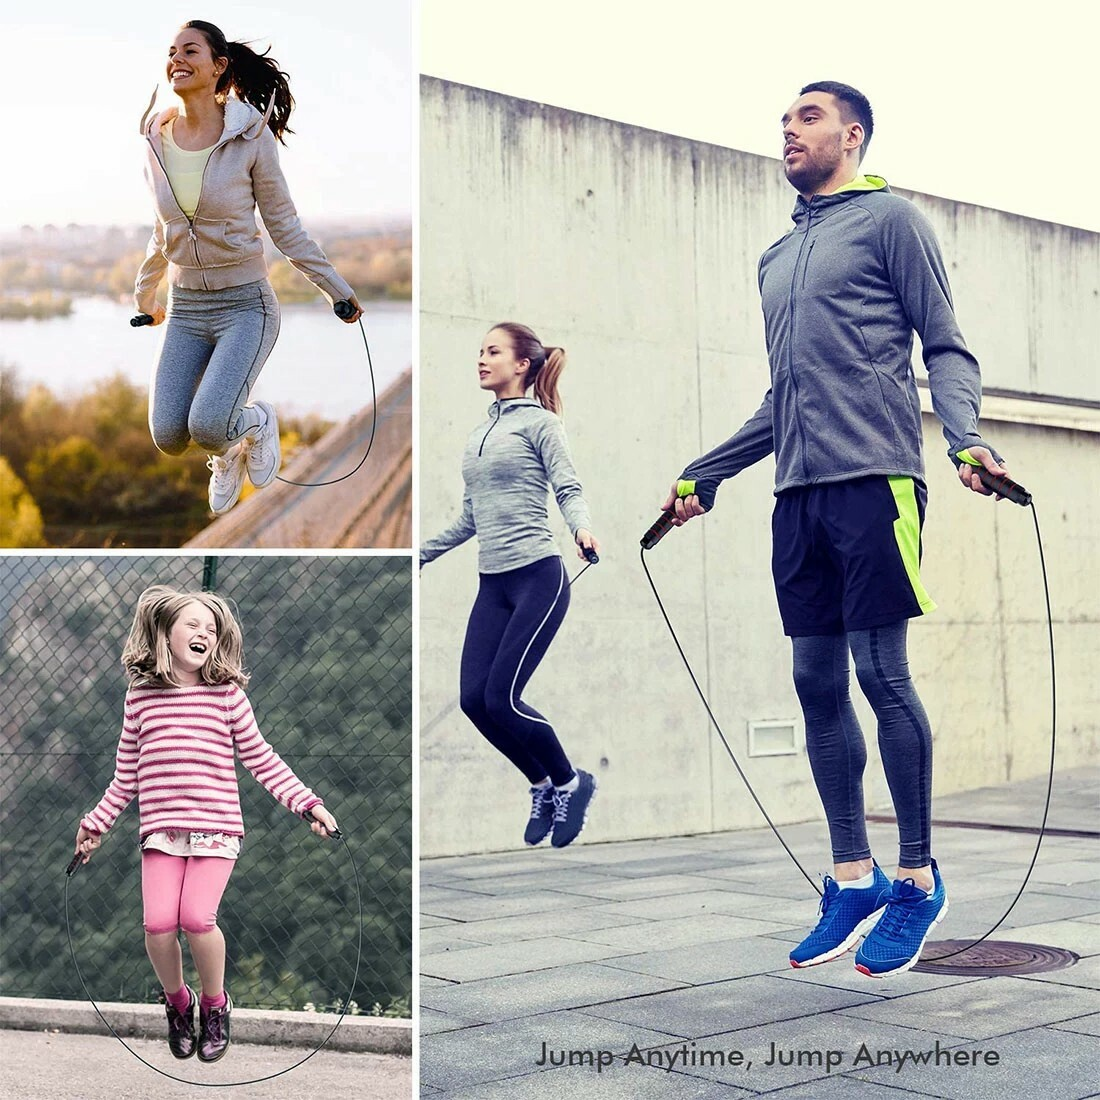 Jump-Rope-Tangle-Free-Rapid-Speed-Jumping-Rope-Cable-with-Ball-Bearings-Steel-Skipping-Rope-Gym.jpg_Q90.jpg_ (3).jpg